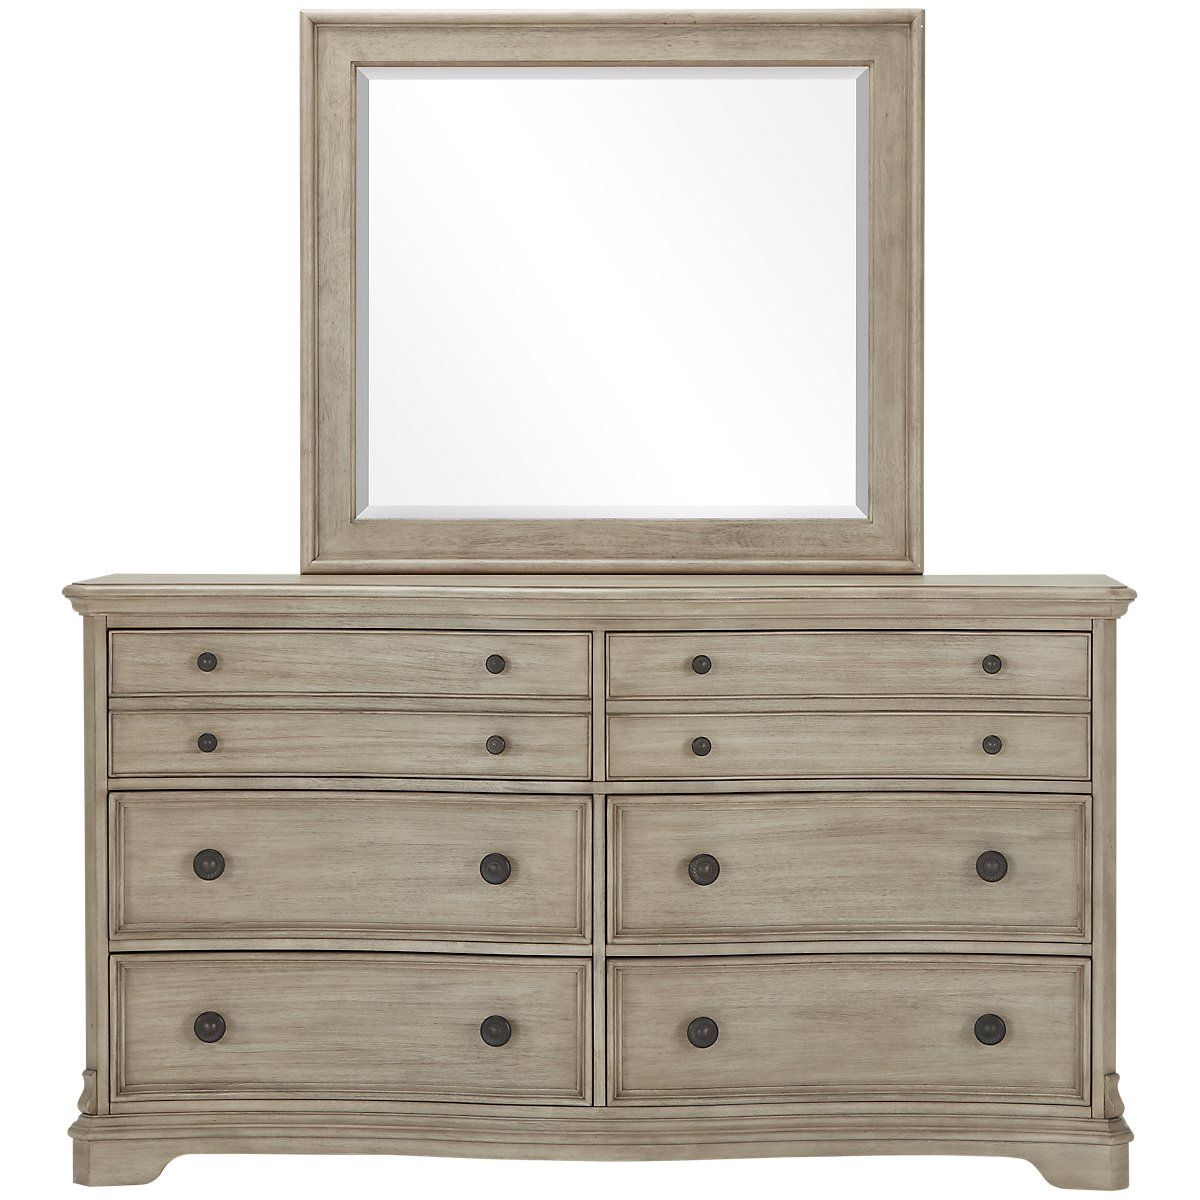 Corinne Light Tone Dresser & Mirror